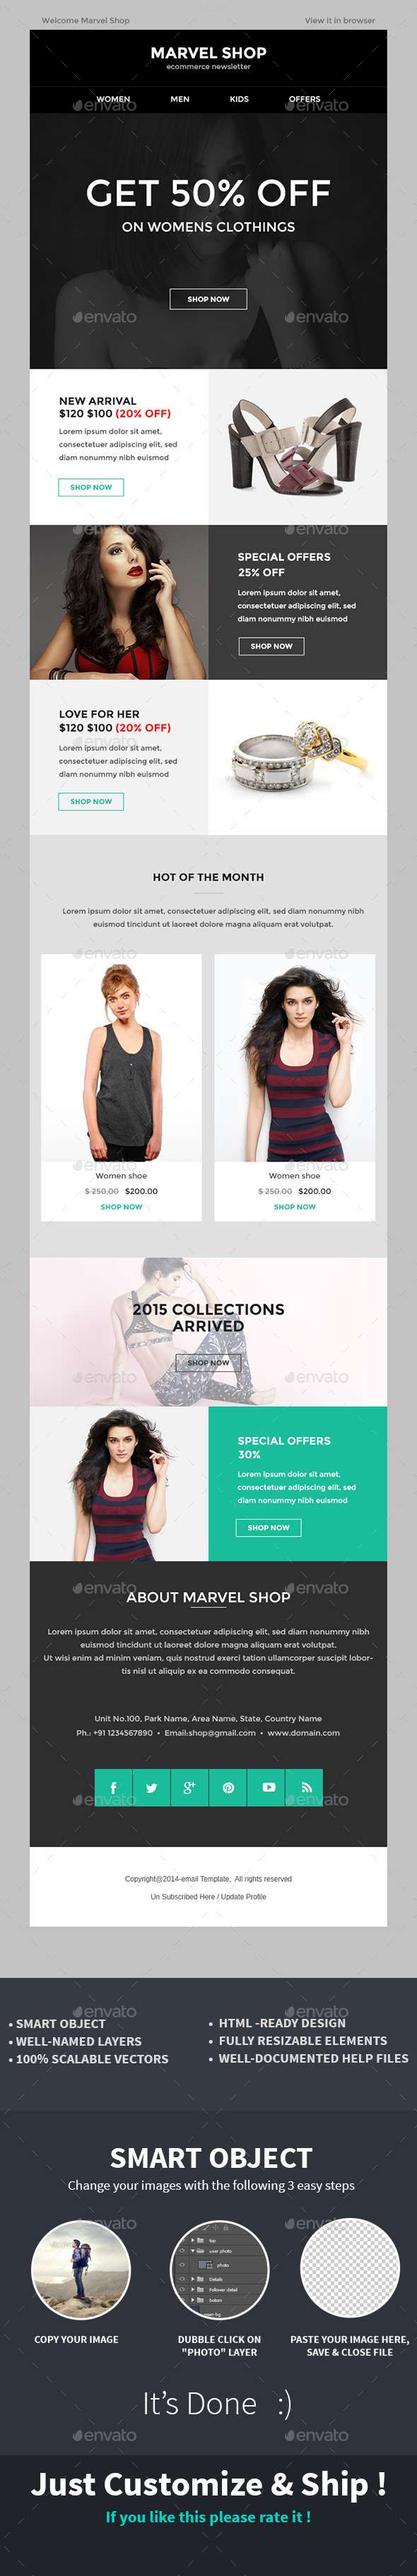 E-commerce Special Offer Newsletter PSD Template - E-newsletters Web Elements